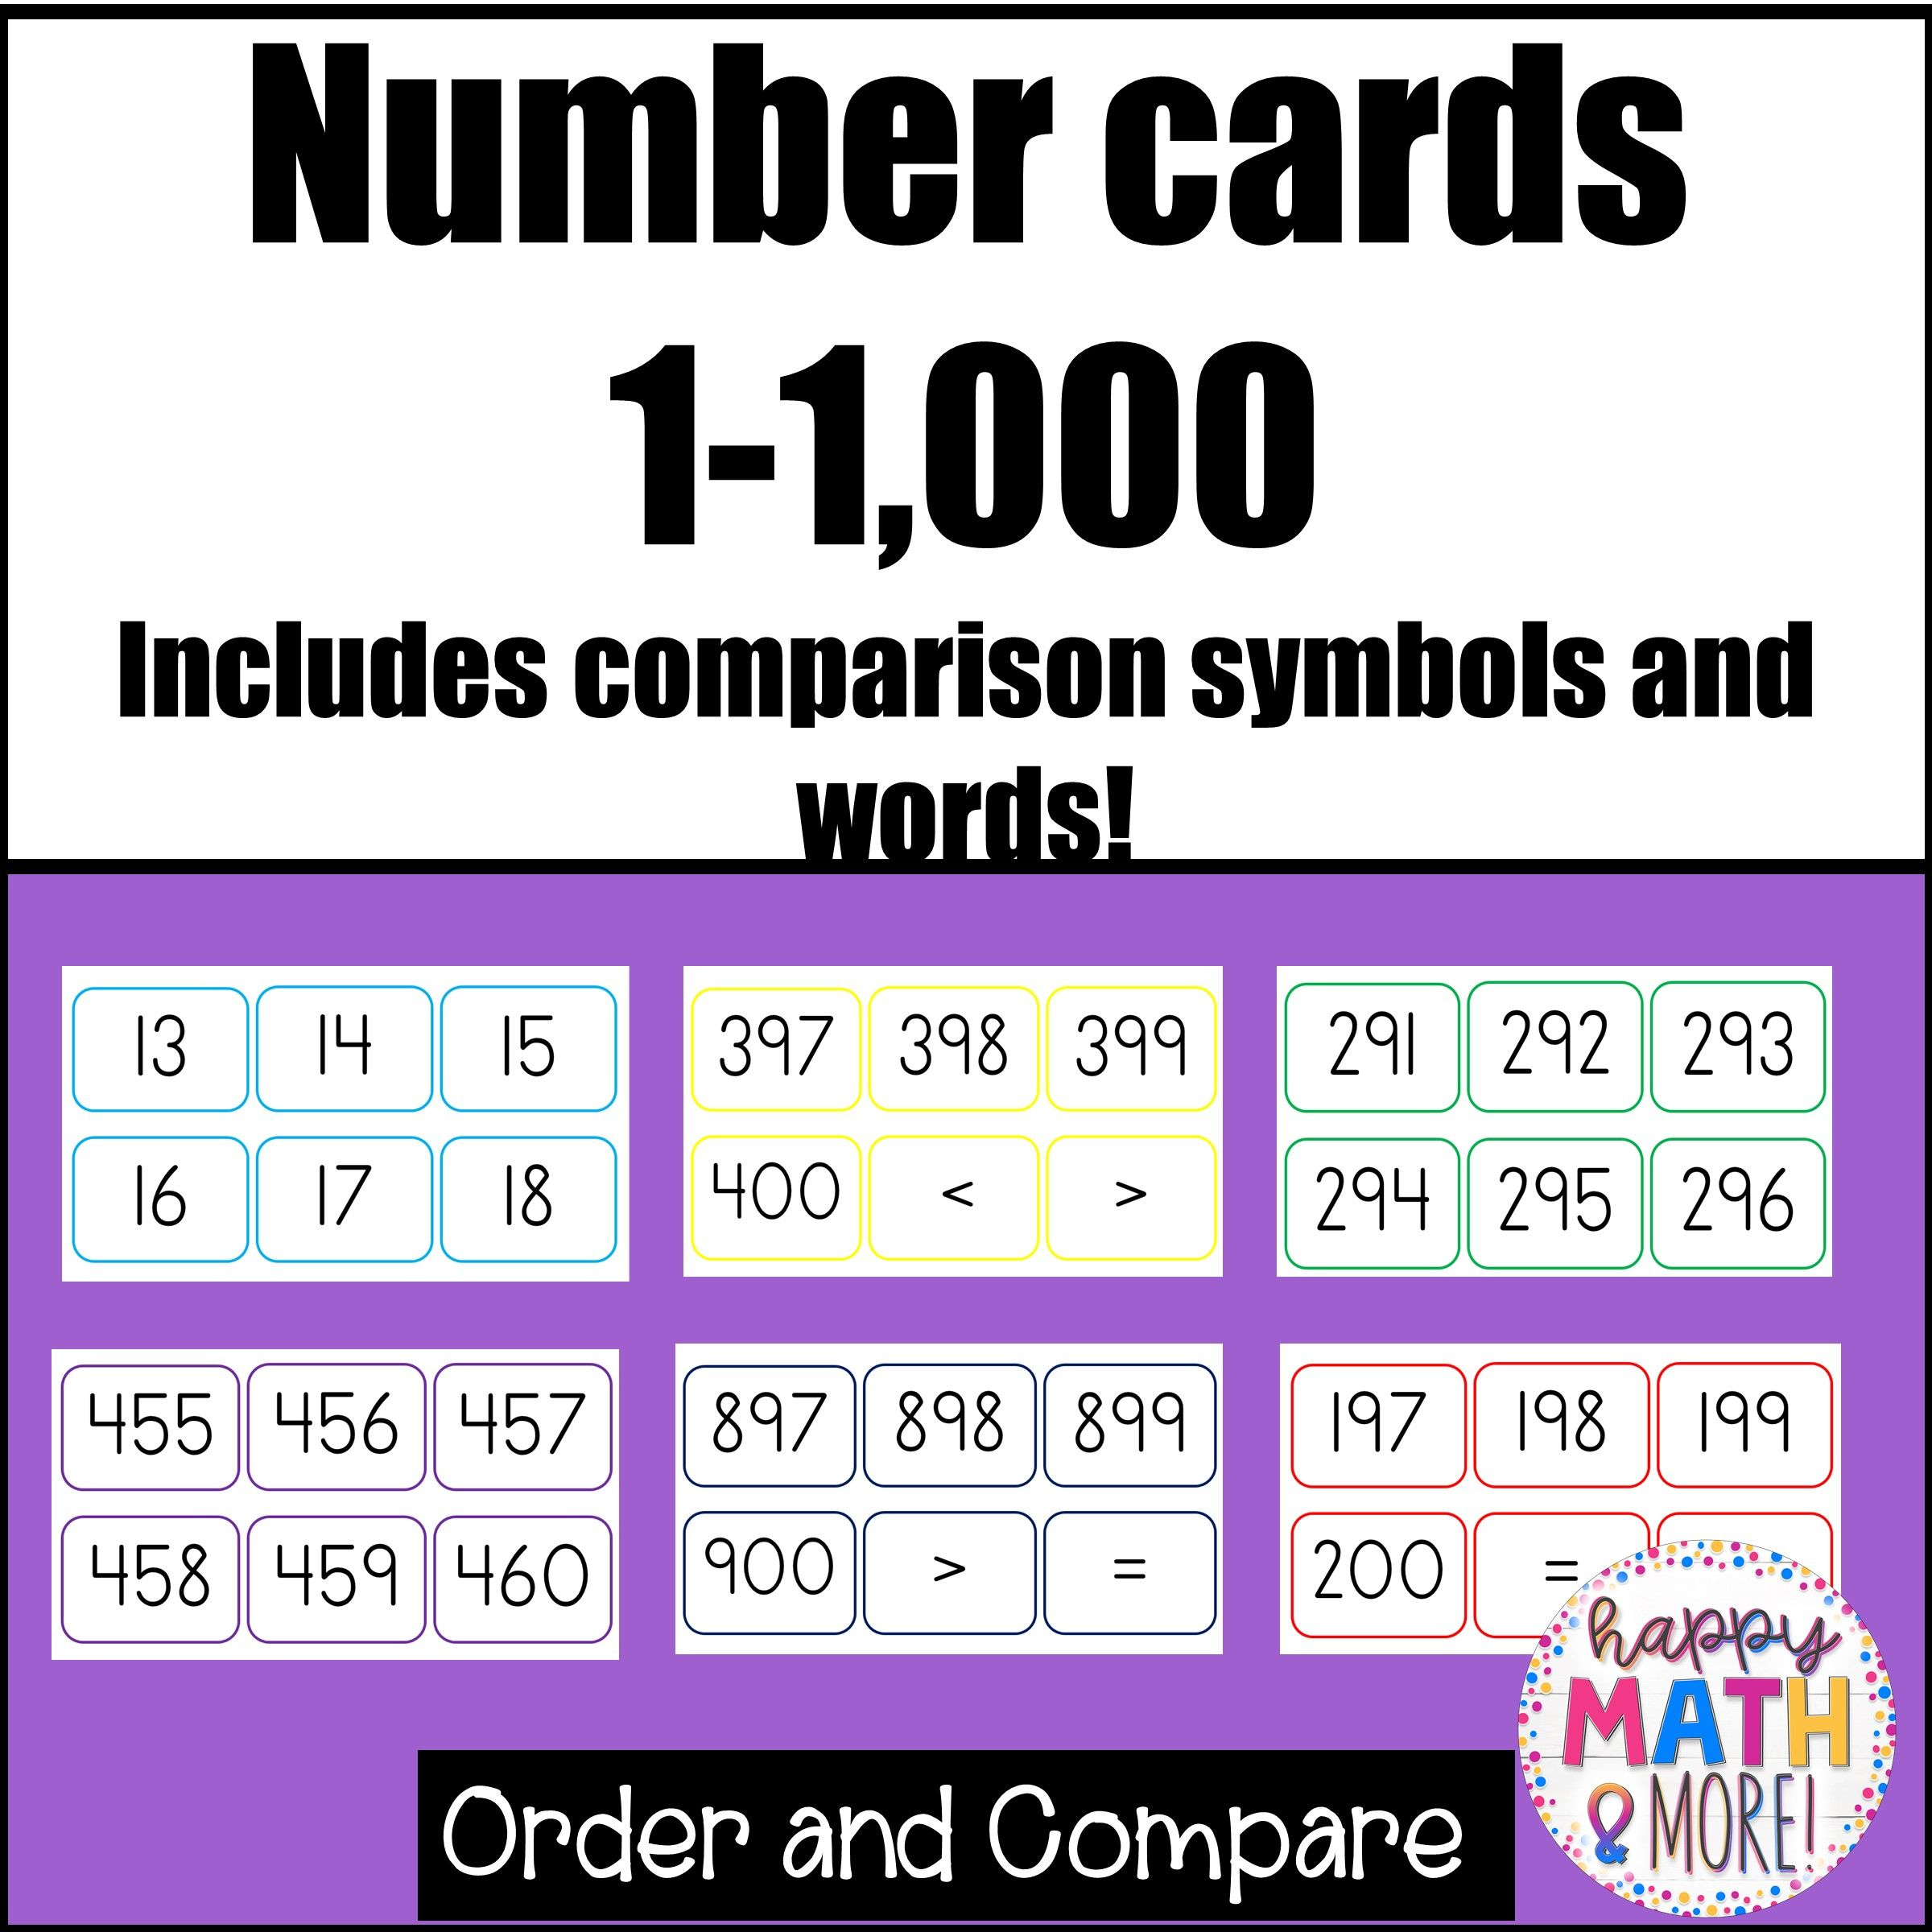 Number Cards 1-1,000 (With Images) | Upper Elementary Math